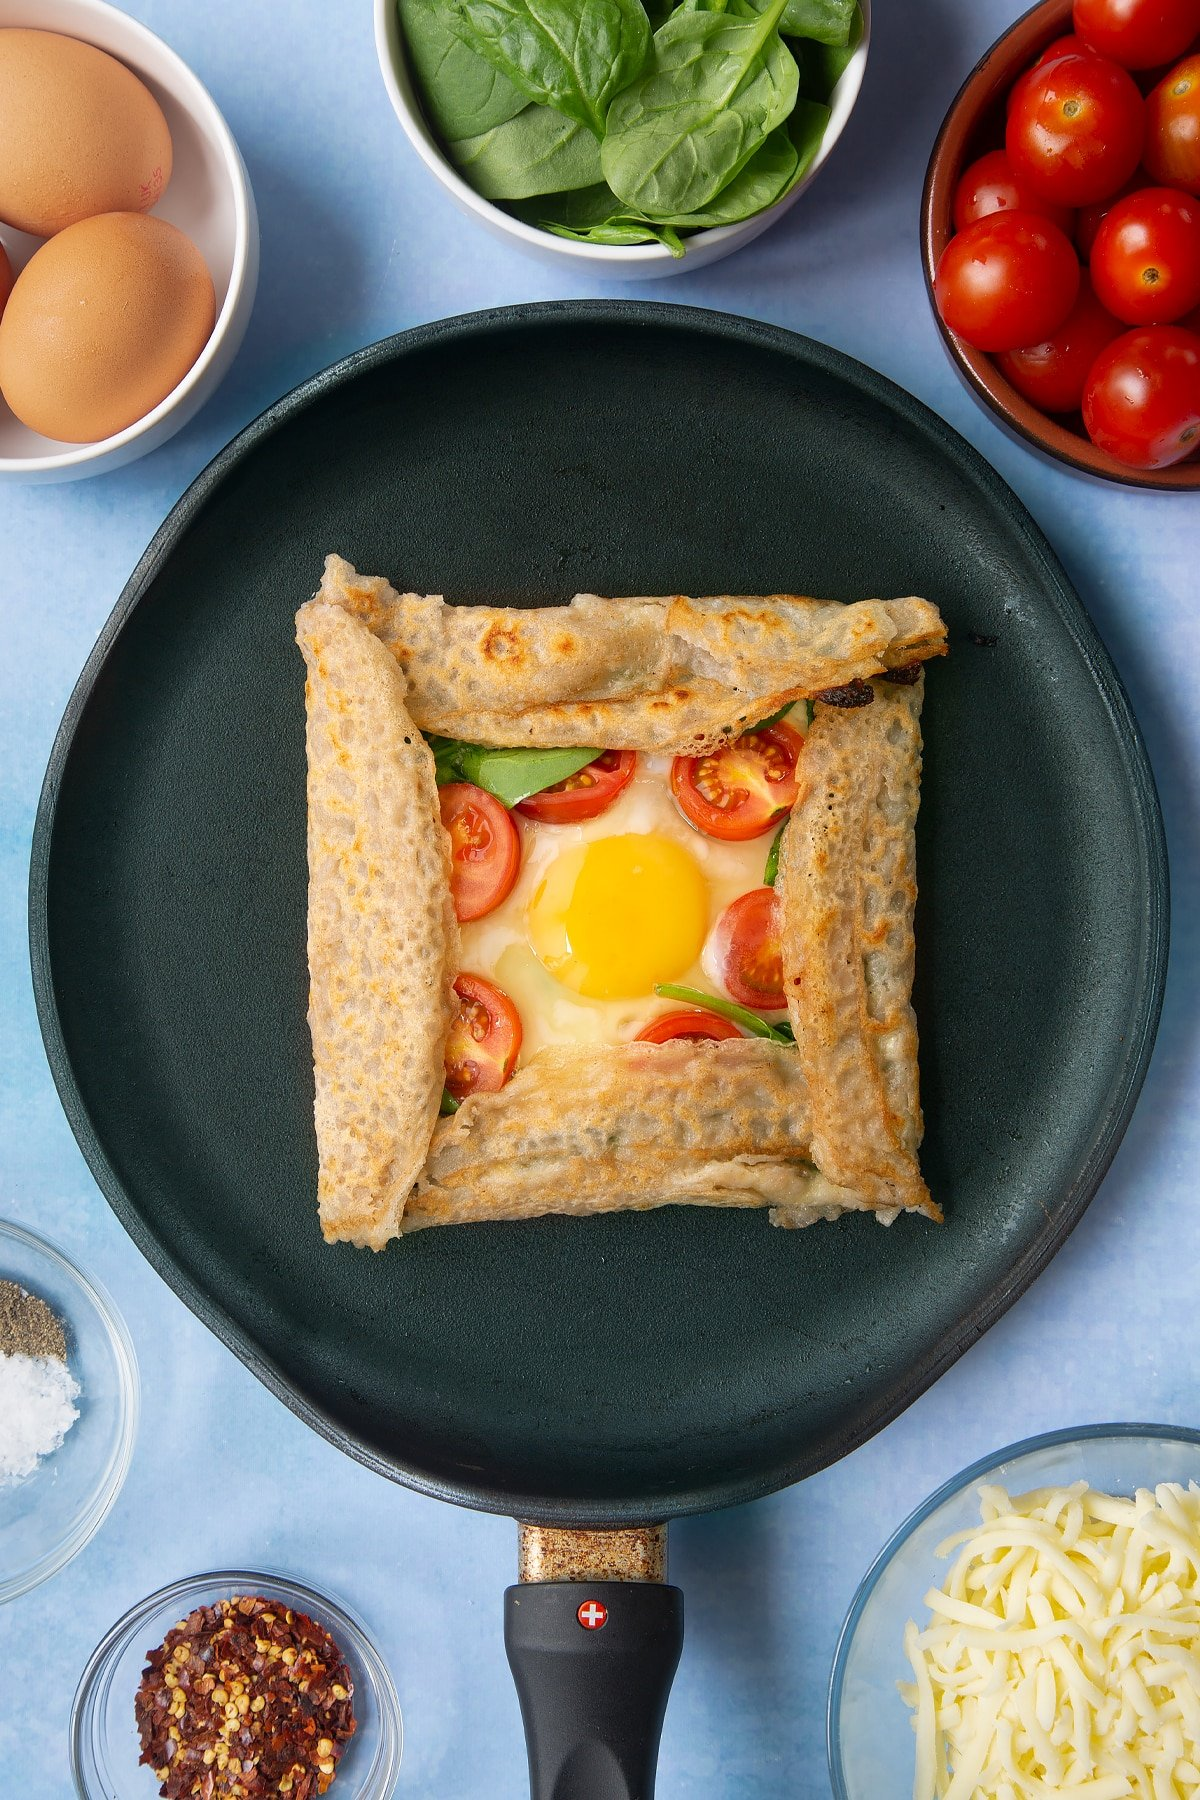 Folded buckwheat galette in a crepe pan. Ingredients to make buckwheat galettes surround the pan.